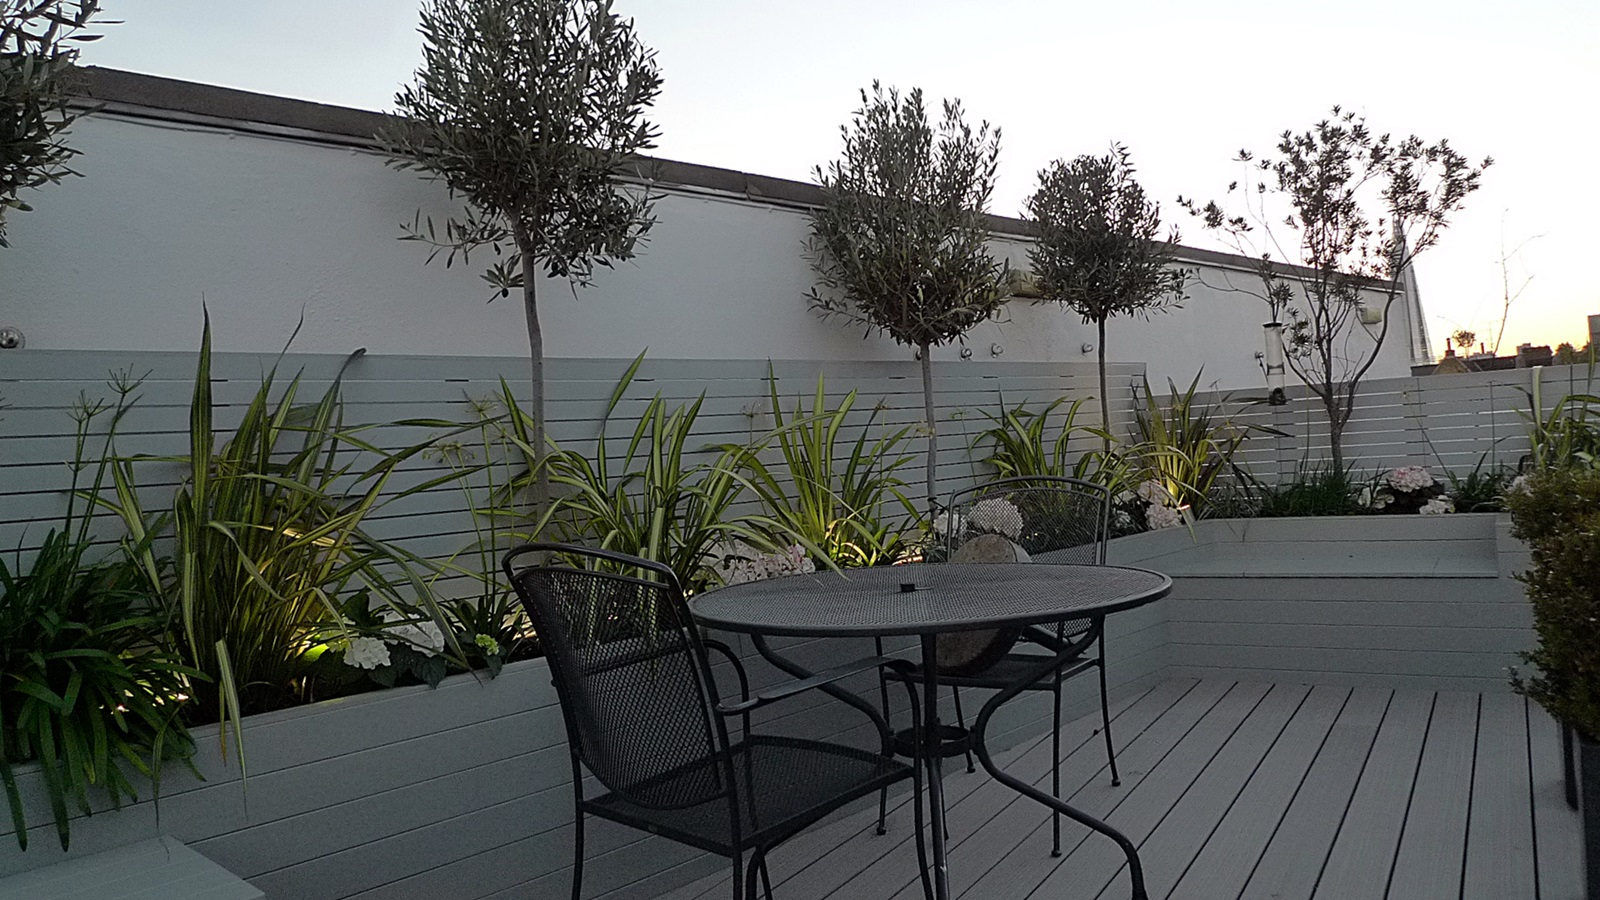 roof terrace garden design fulham chelsea clapham putney battersea london